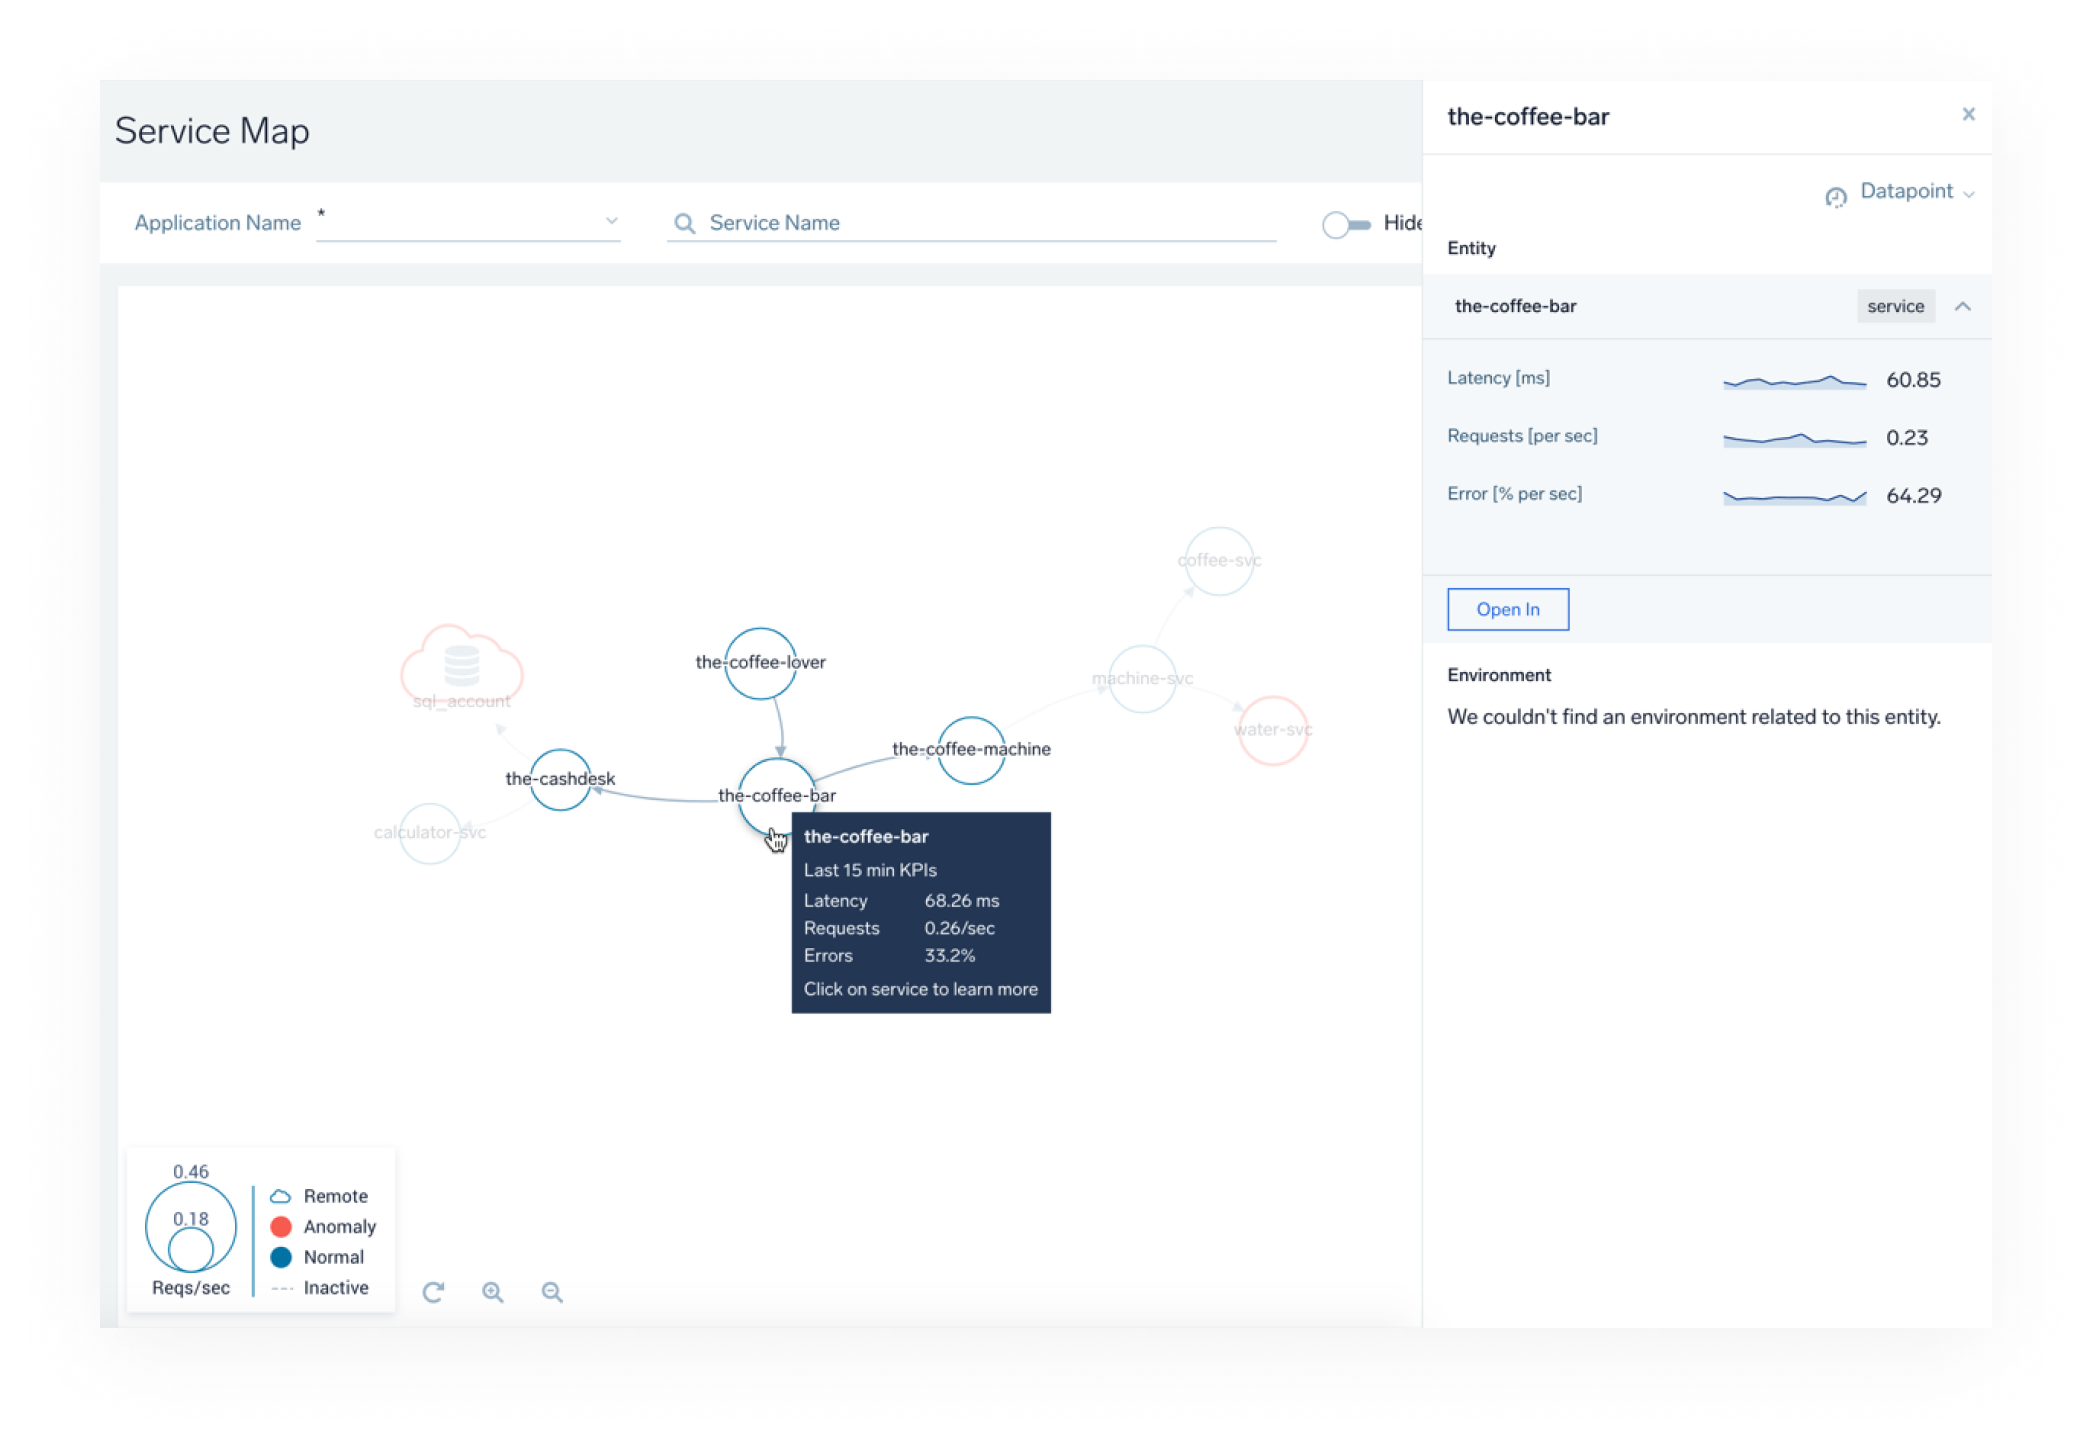 Service map & dashboards